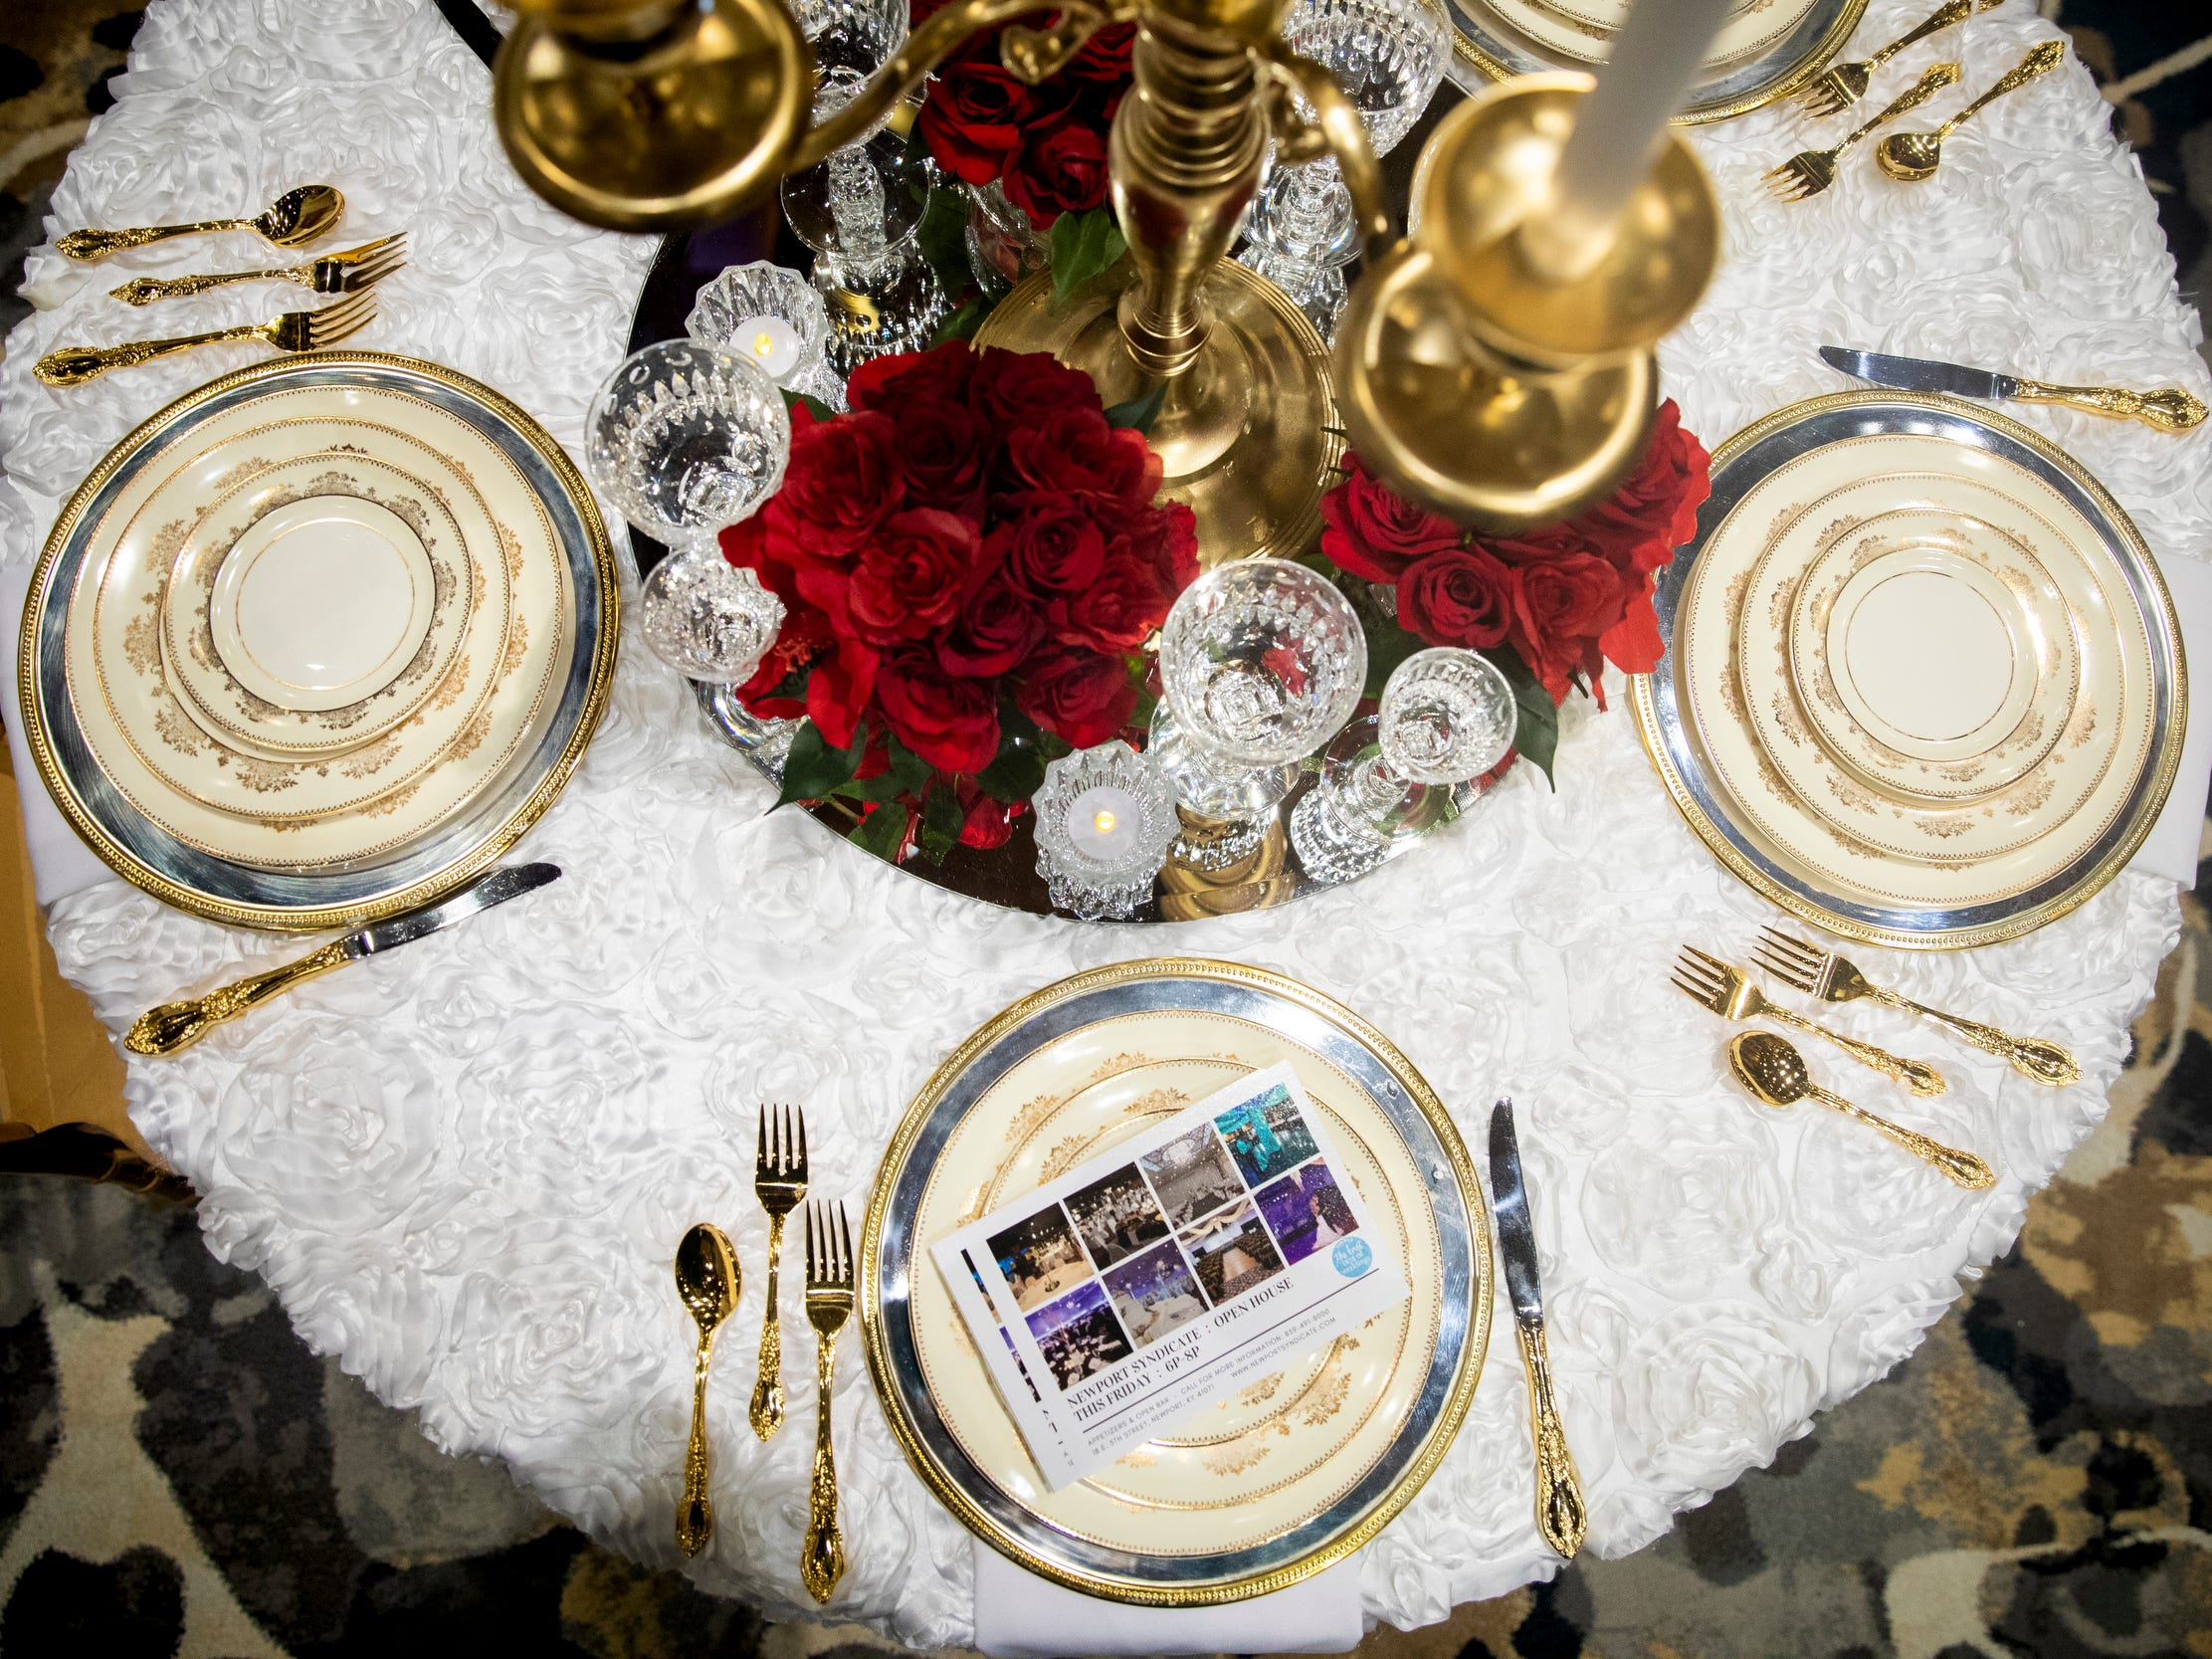 Newport Syndicate displayed linens and table decorations that can be used at their event space for the Wendy's Bridal Show at the Duke Energy Convention Center Saturday, January 5, 2019 in Downtown Cincinnati.